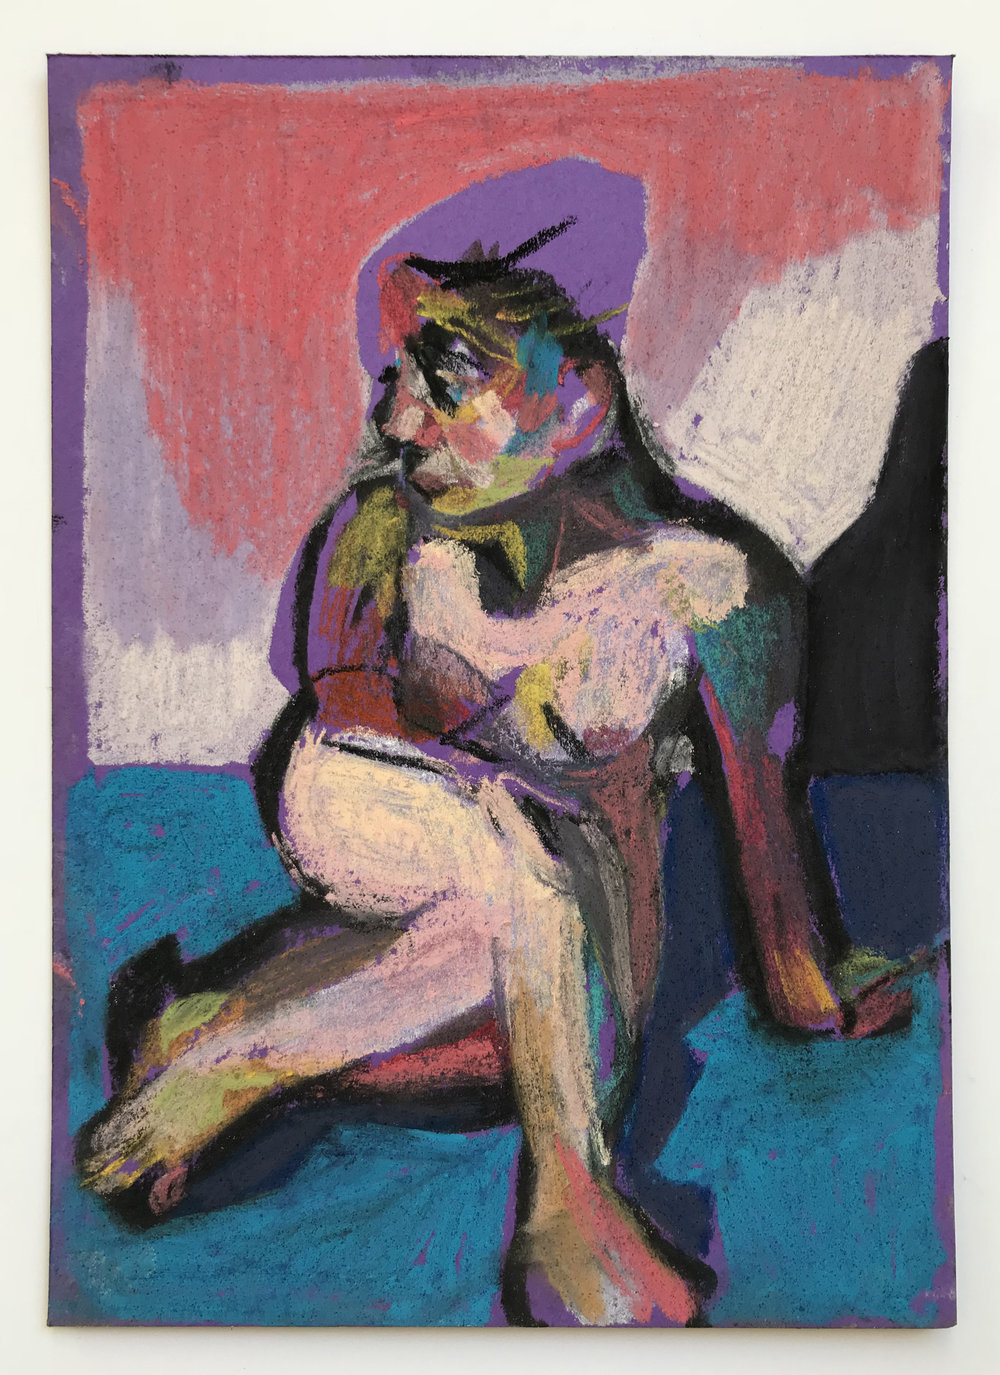 'Nude on purple with blue ground', 2018, pastel, 14.8 x 10.5cm, SOLD